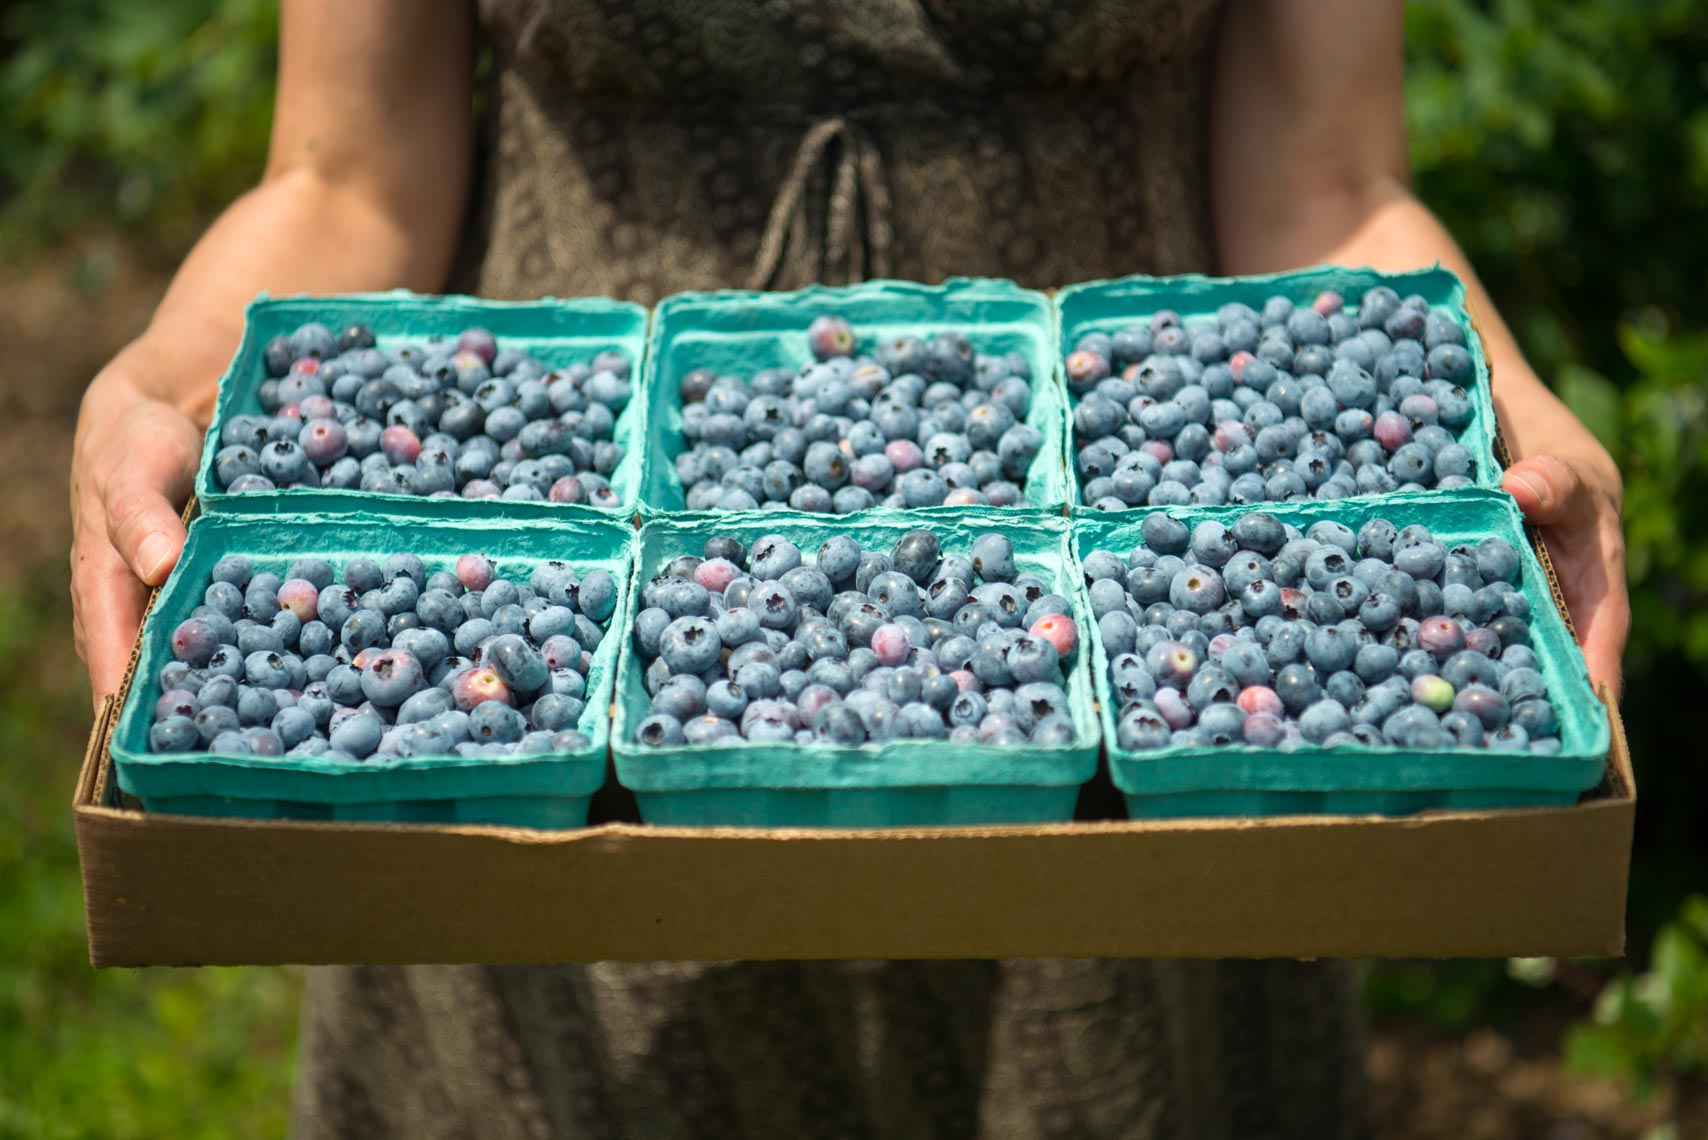 Blueberry Picking - Food Photographer Paul S. Bartholomew